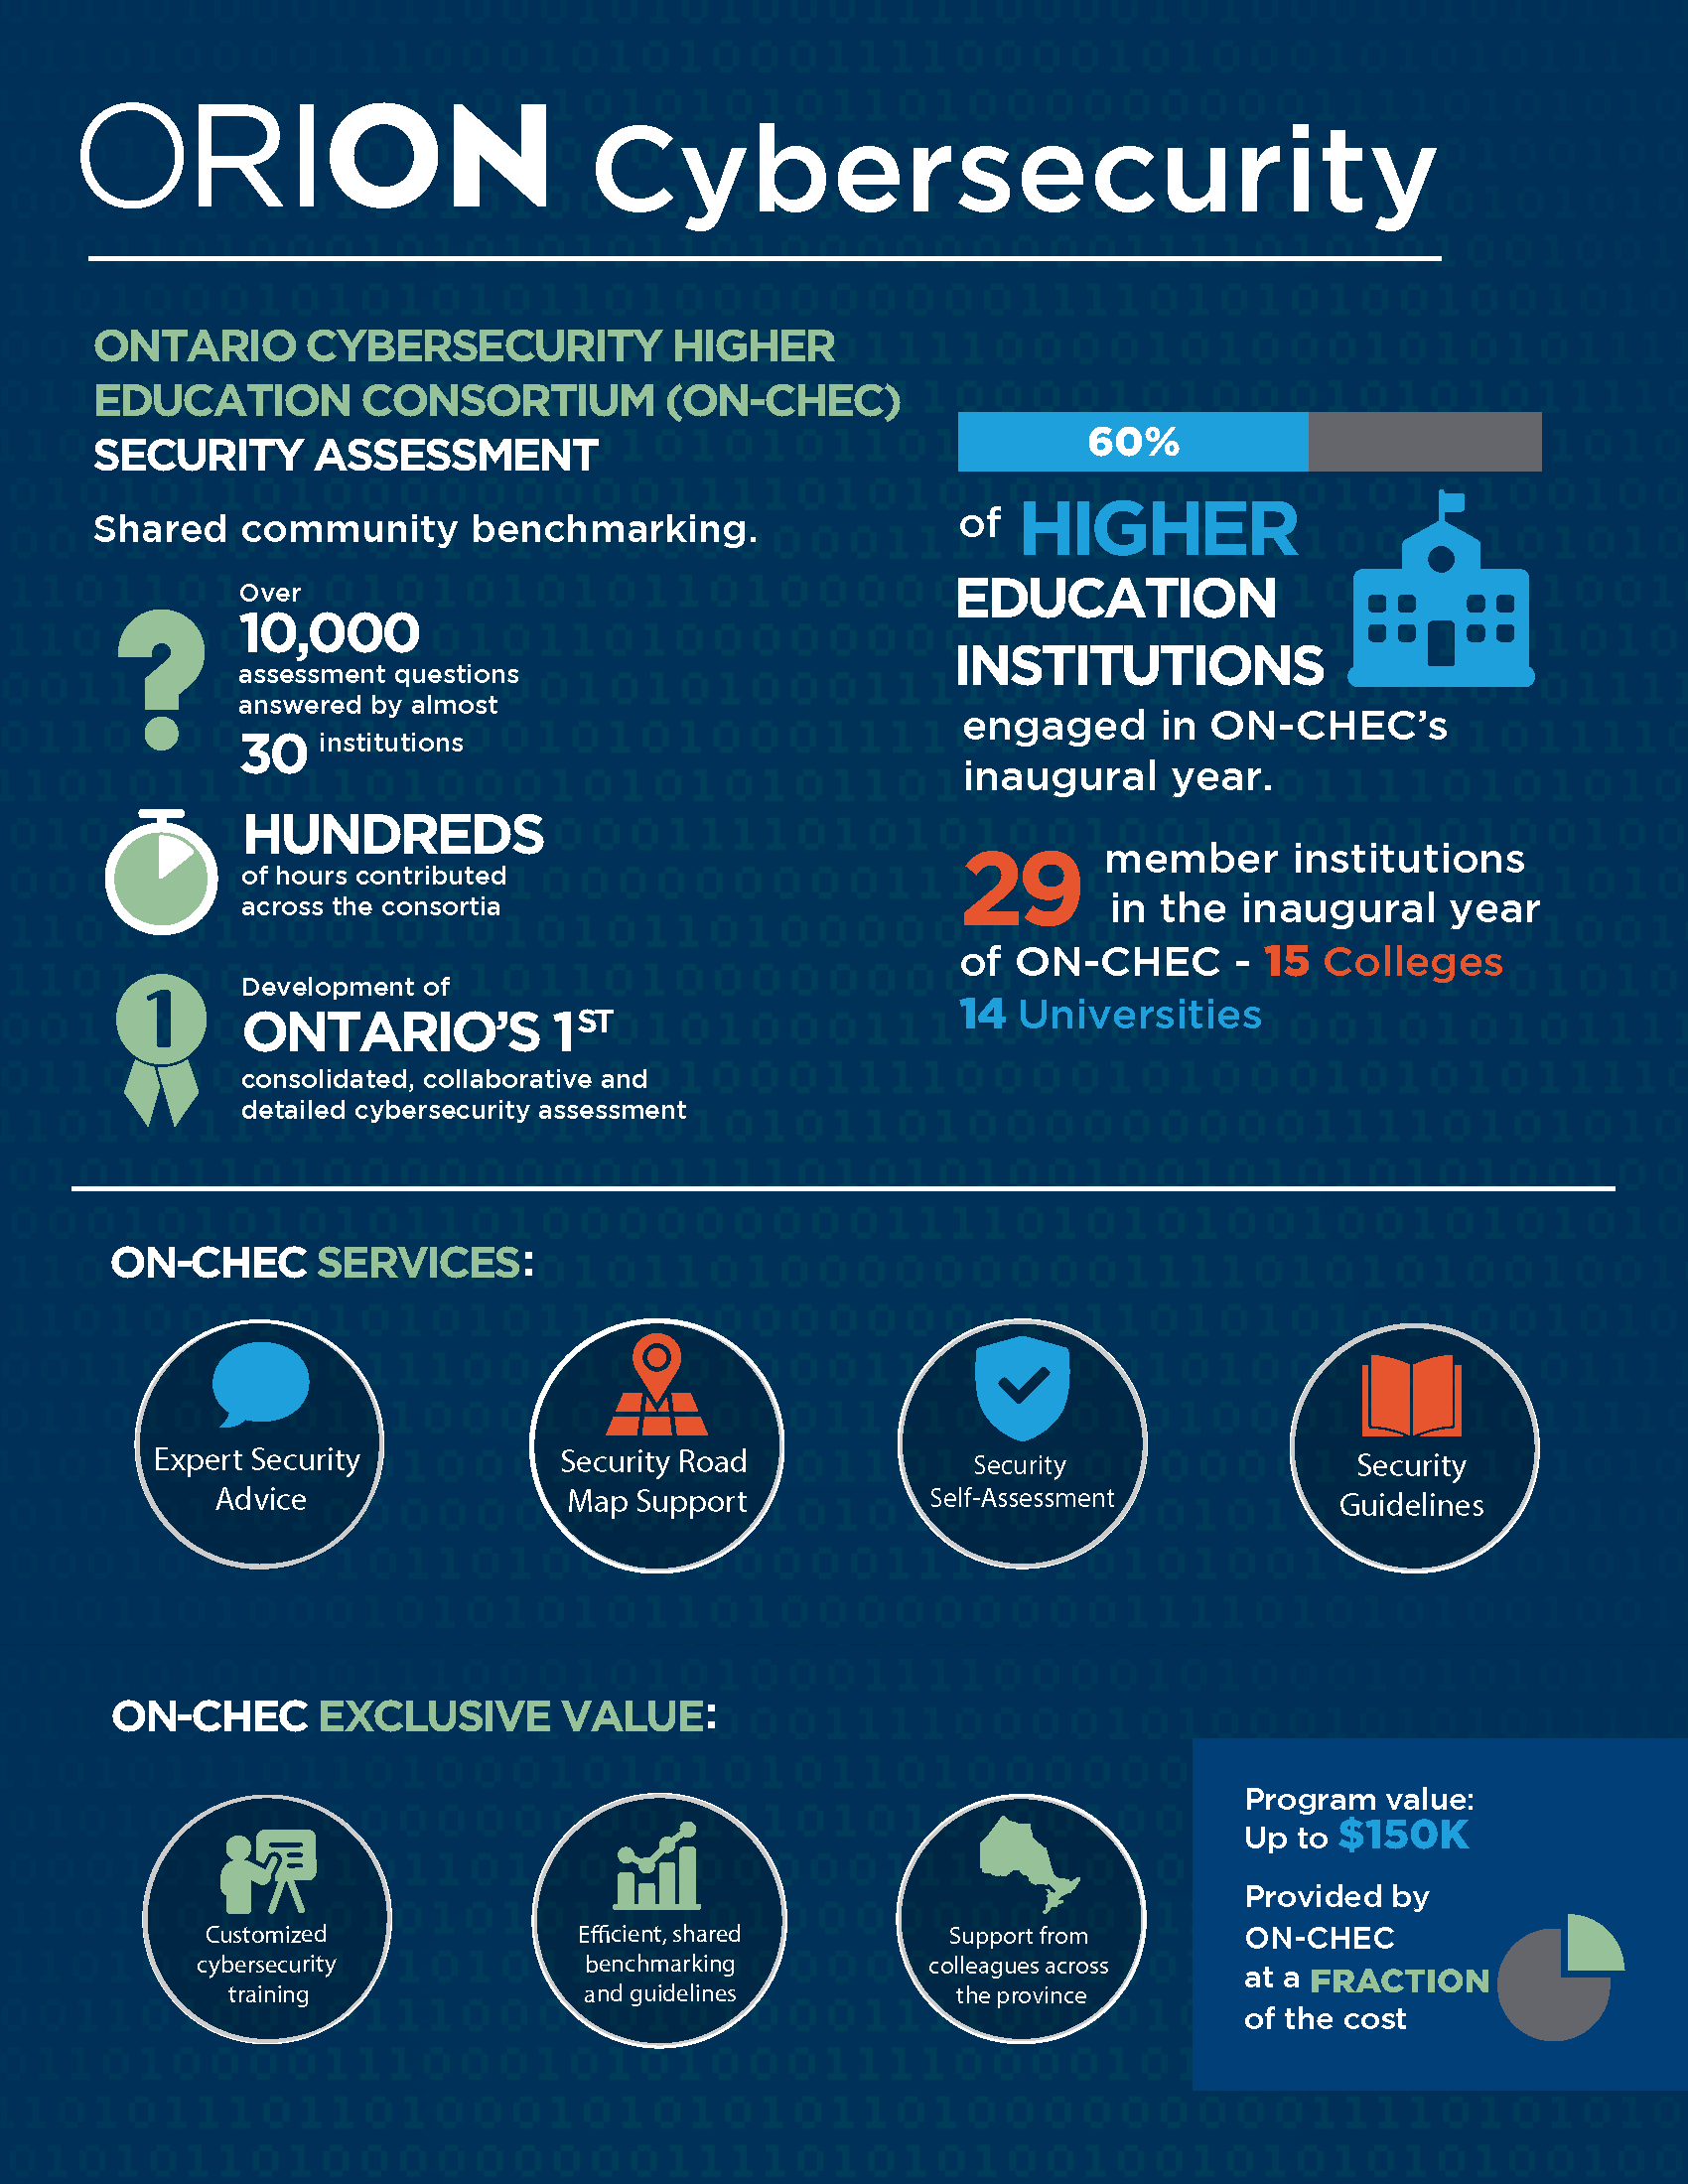 An infographic about cybersecurity services provided by ON-CHEC